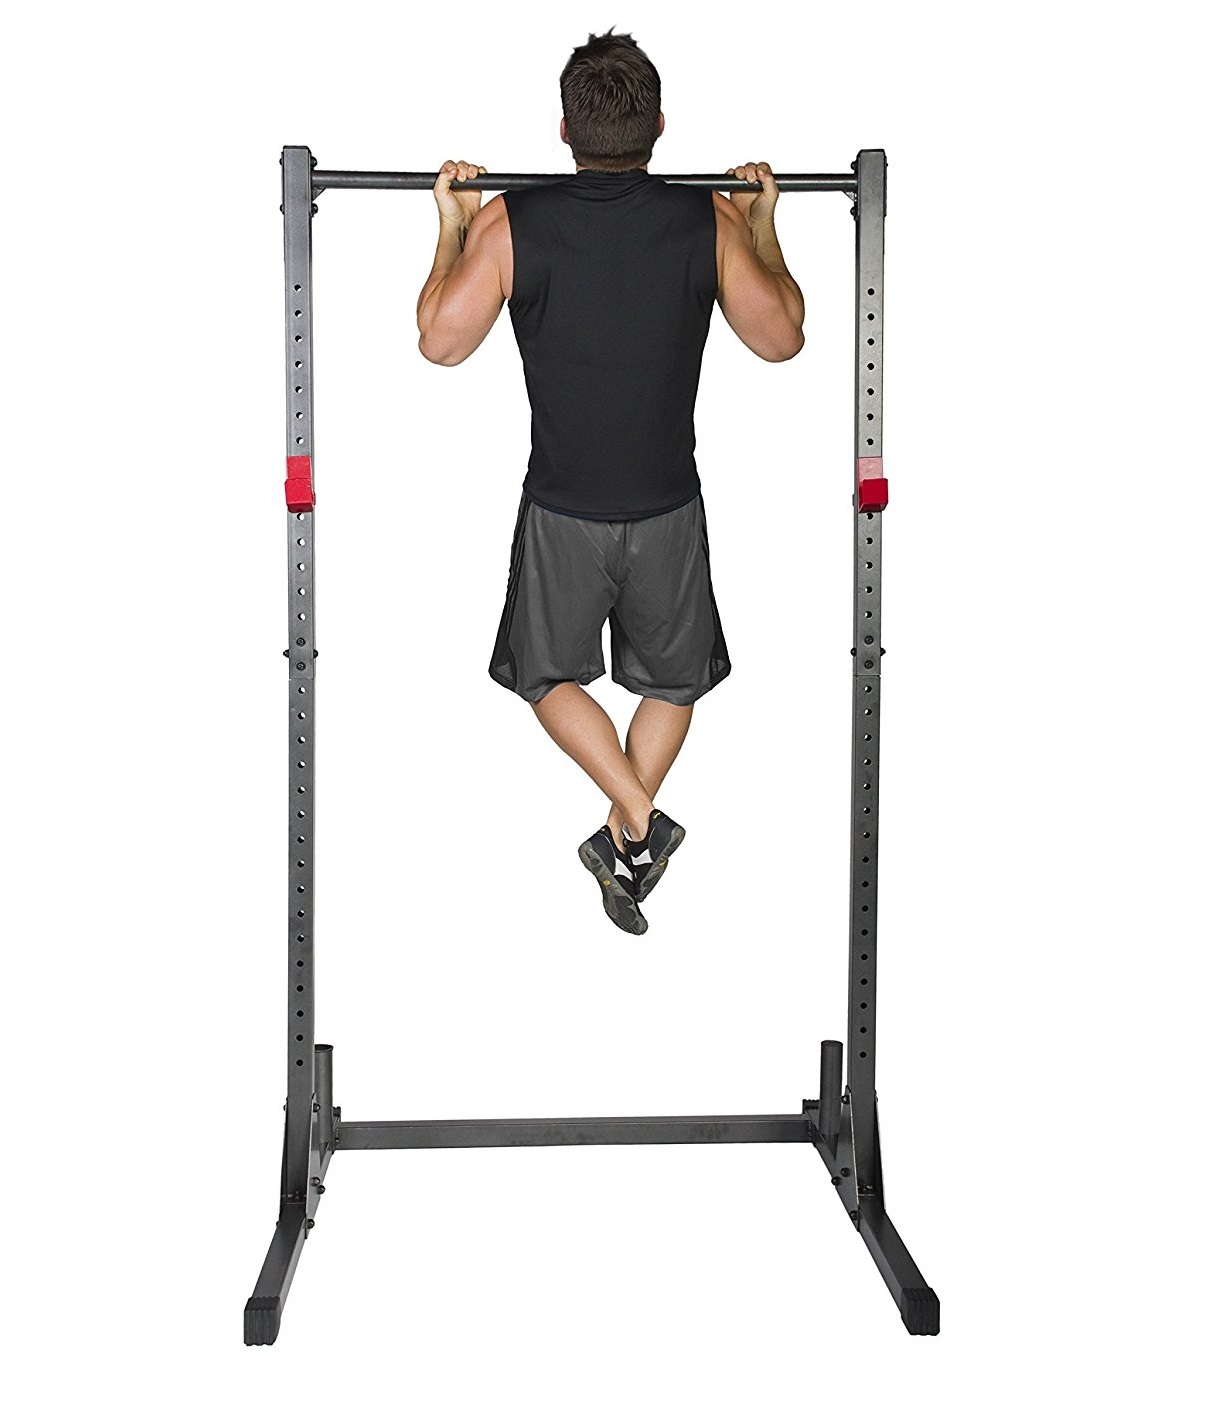 Best squat rack with pull up bar 2018 reviews for A squat rack